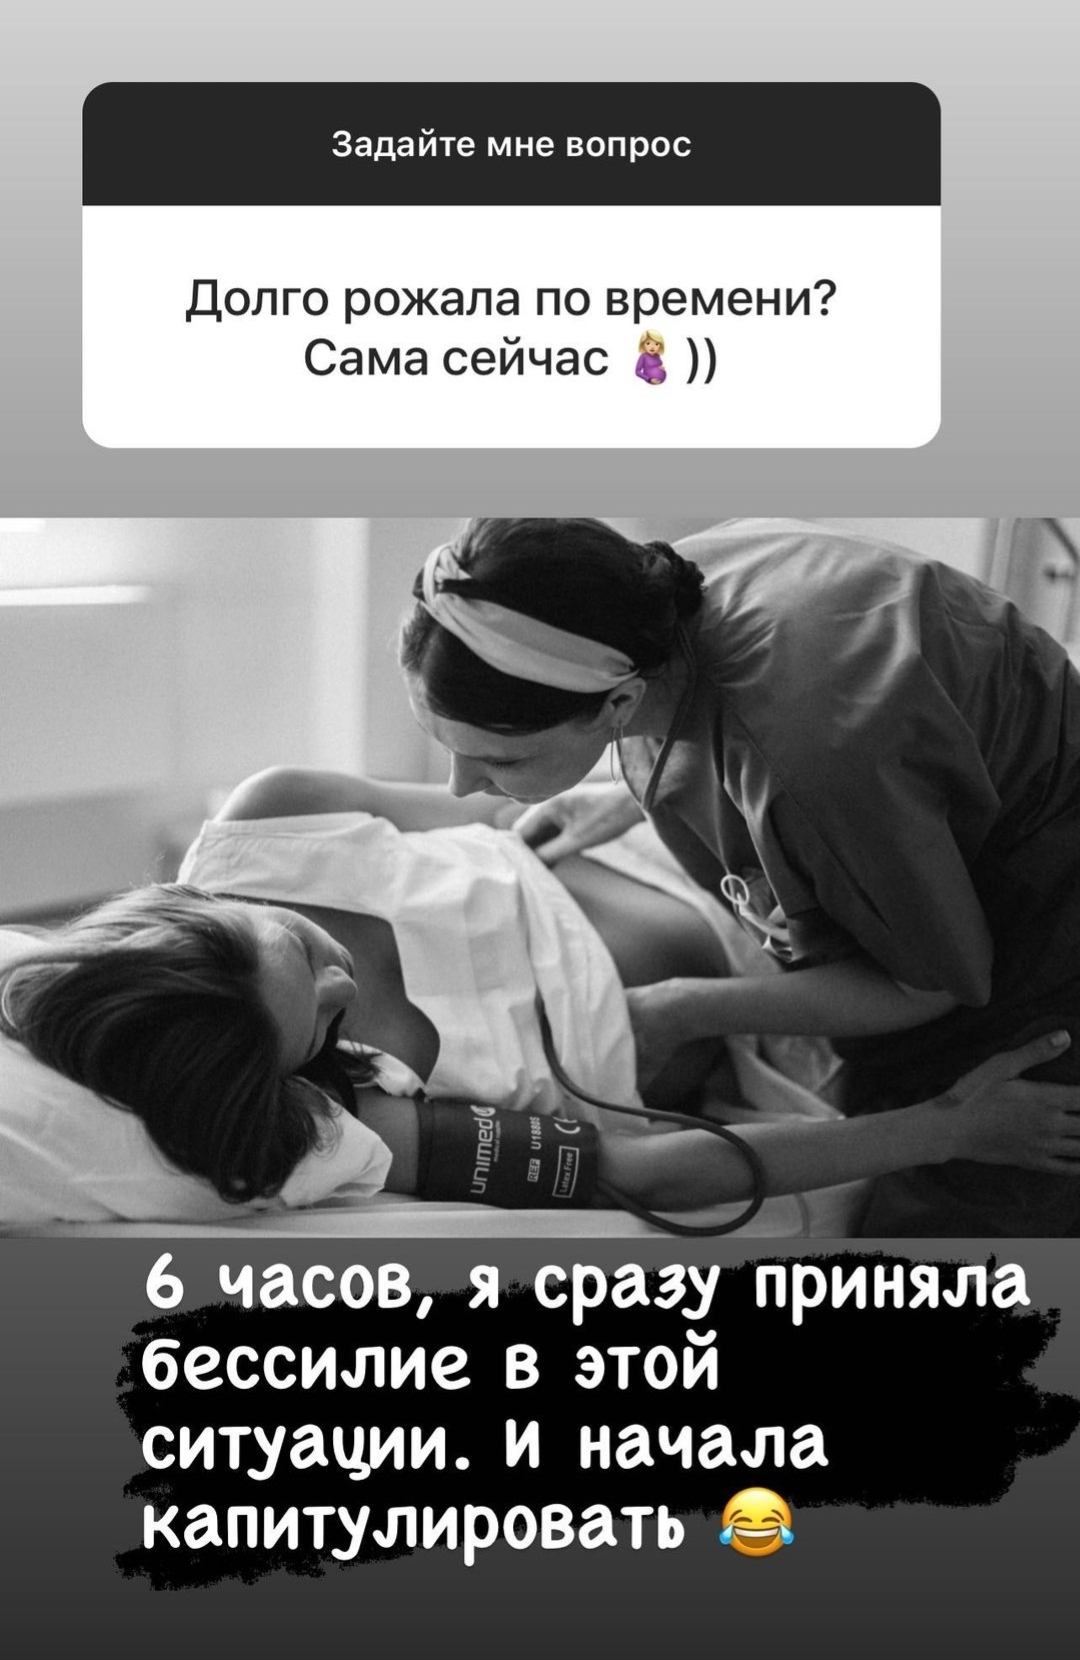 Lesya Kafelnikova described in detail how the birth went and showed a picture from the ward